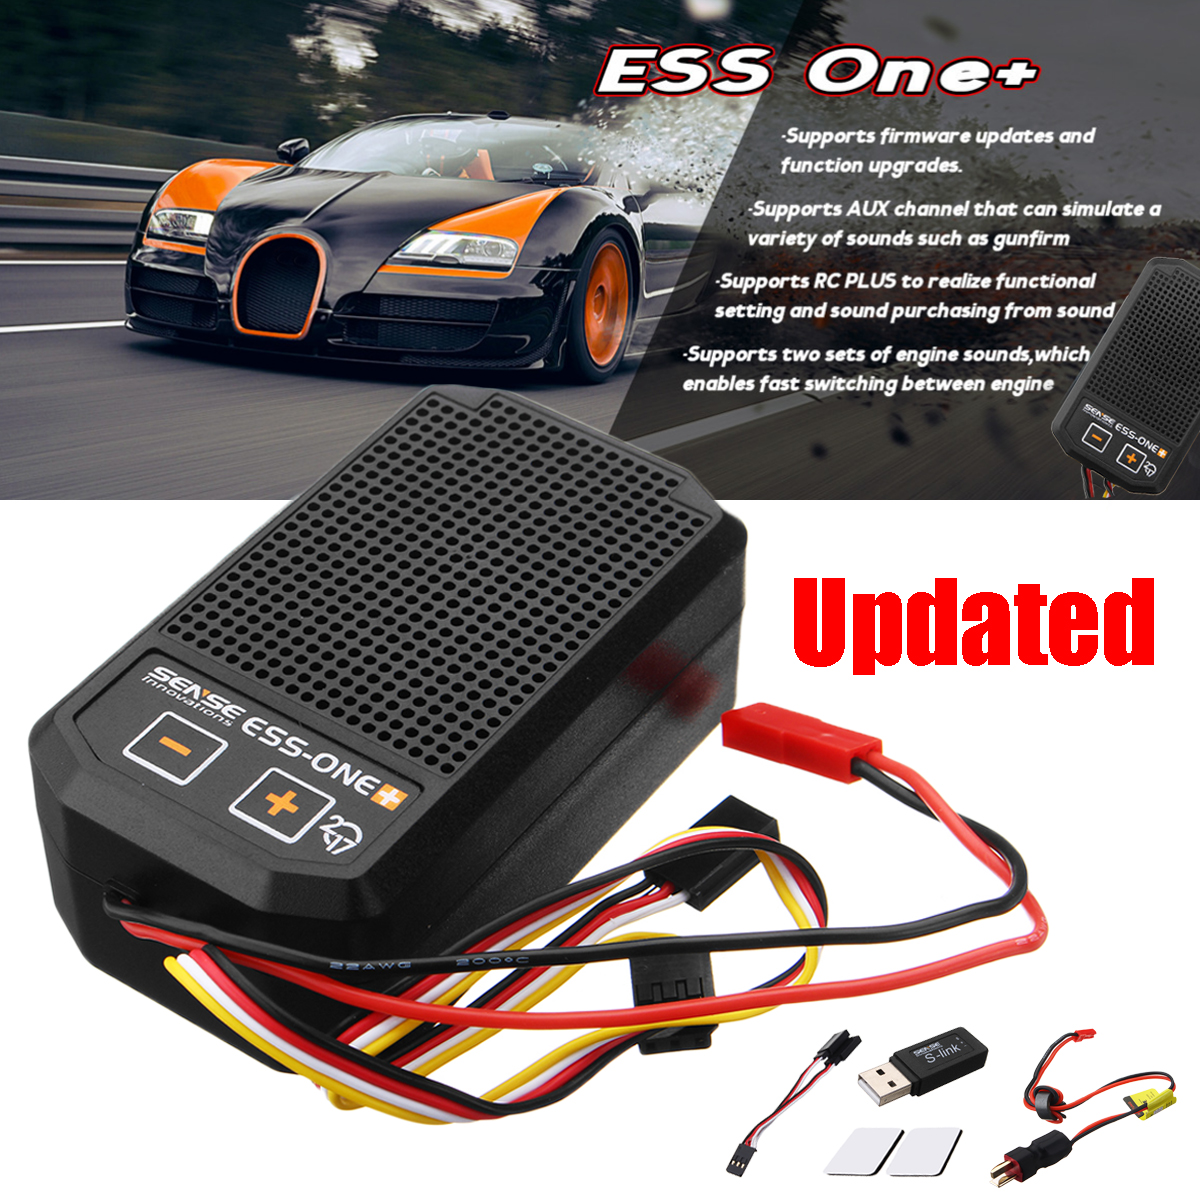 real engine sound simulator kit rc car parts sense innovations one plus  2017 advanced dns/dcr overload protected intelligent